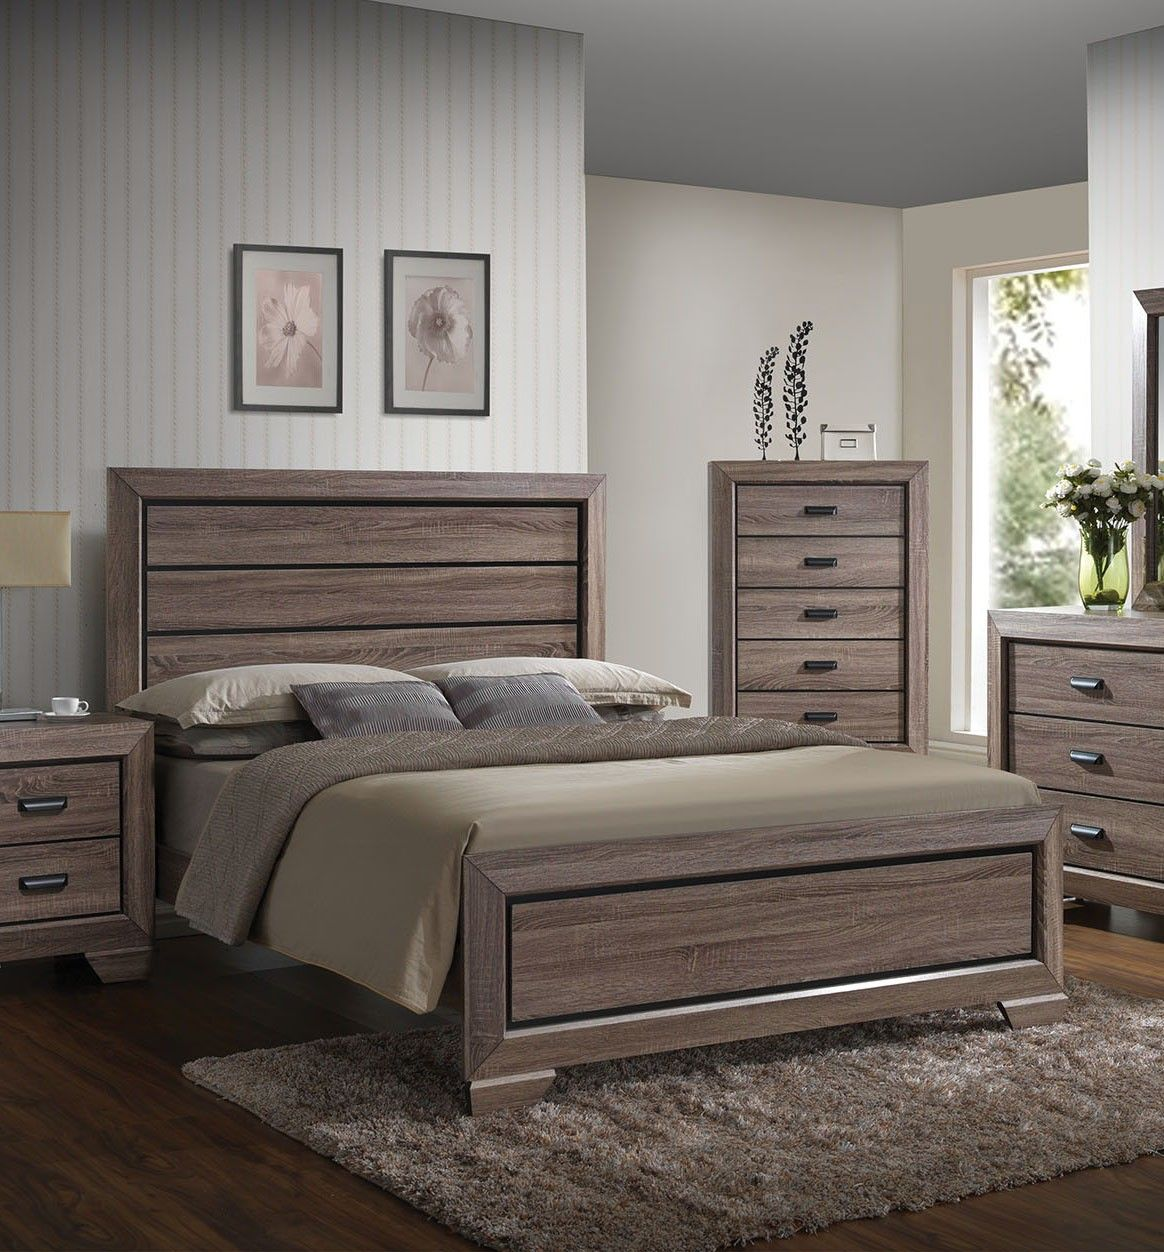 acme 26017ek lyndon weathered gray grain eastern king bed hogar